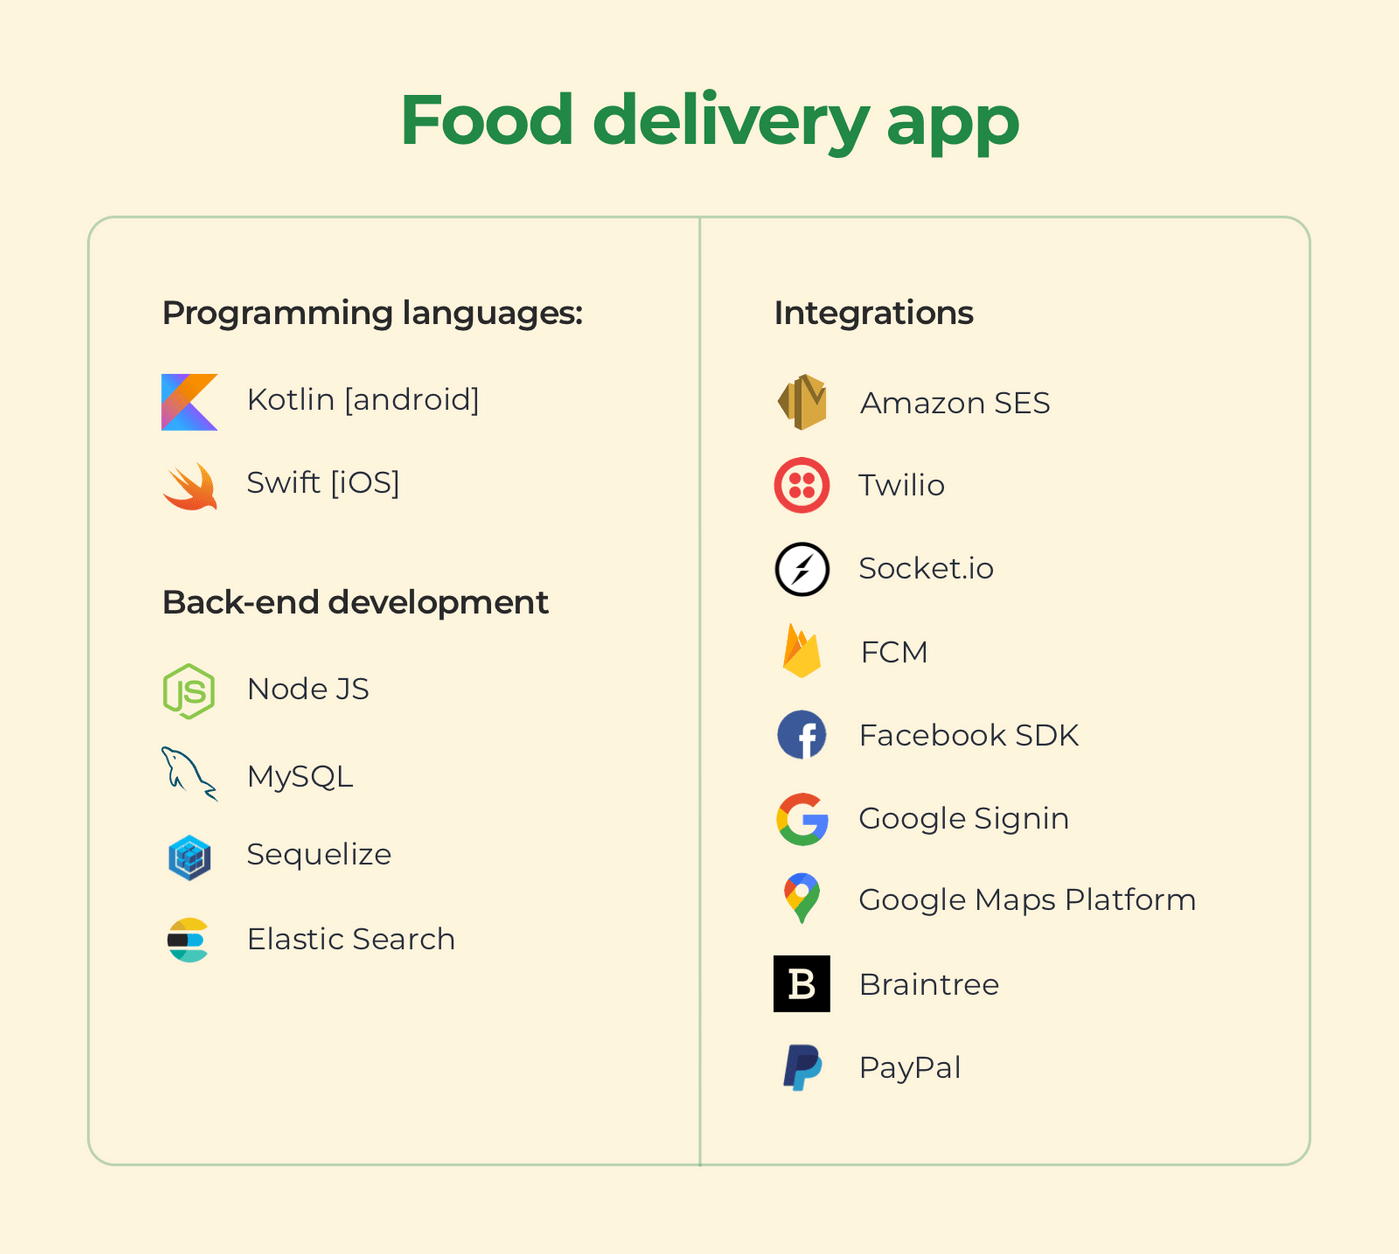 Common technologies used to develop a food delivery app